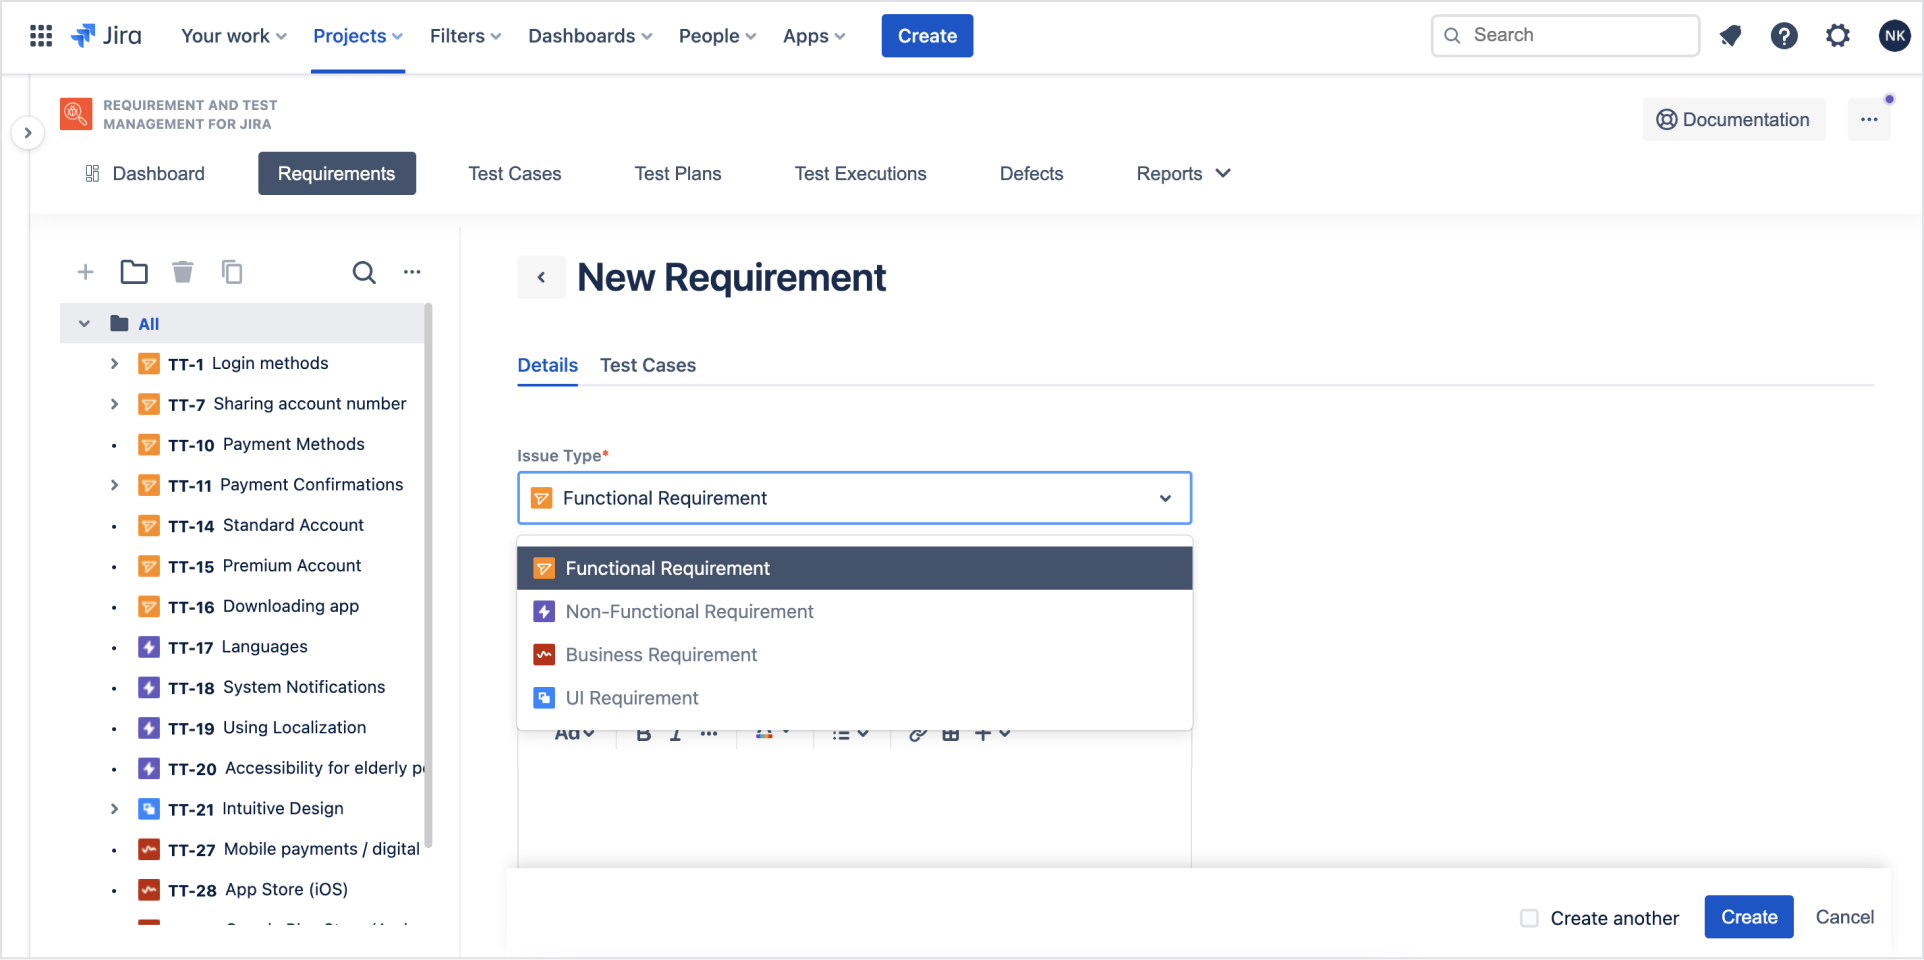 Add and configured requirement with Requirements and Test Management for Jira app